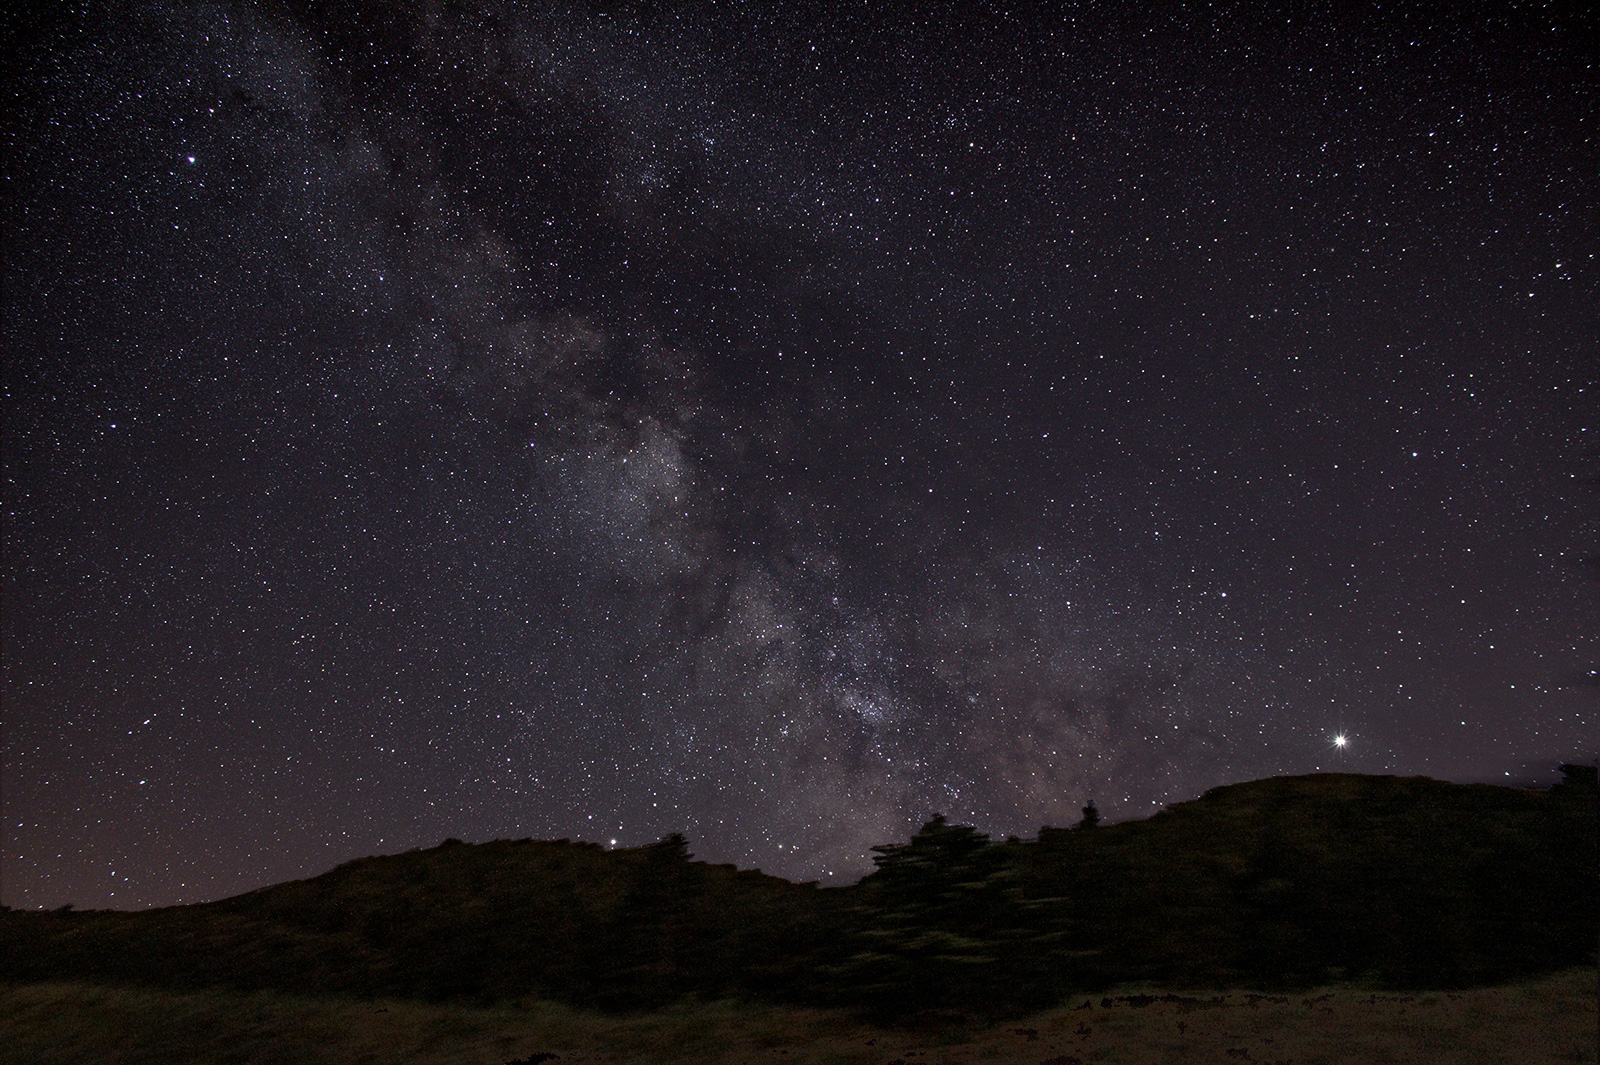 Wide angle Milky Way shots from the Languedoc